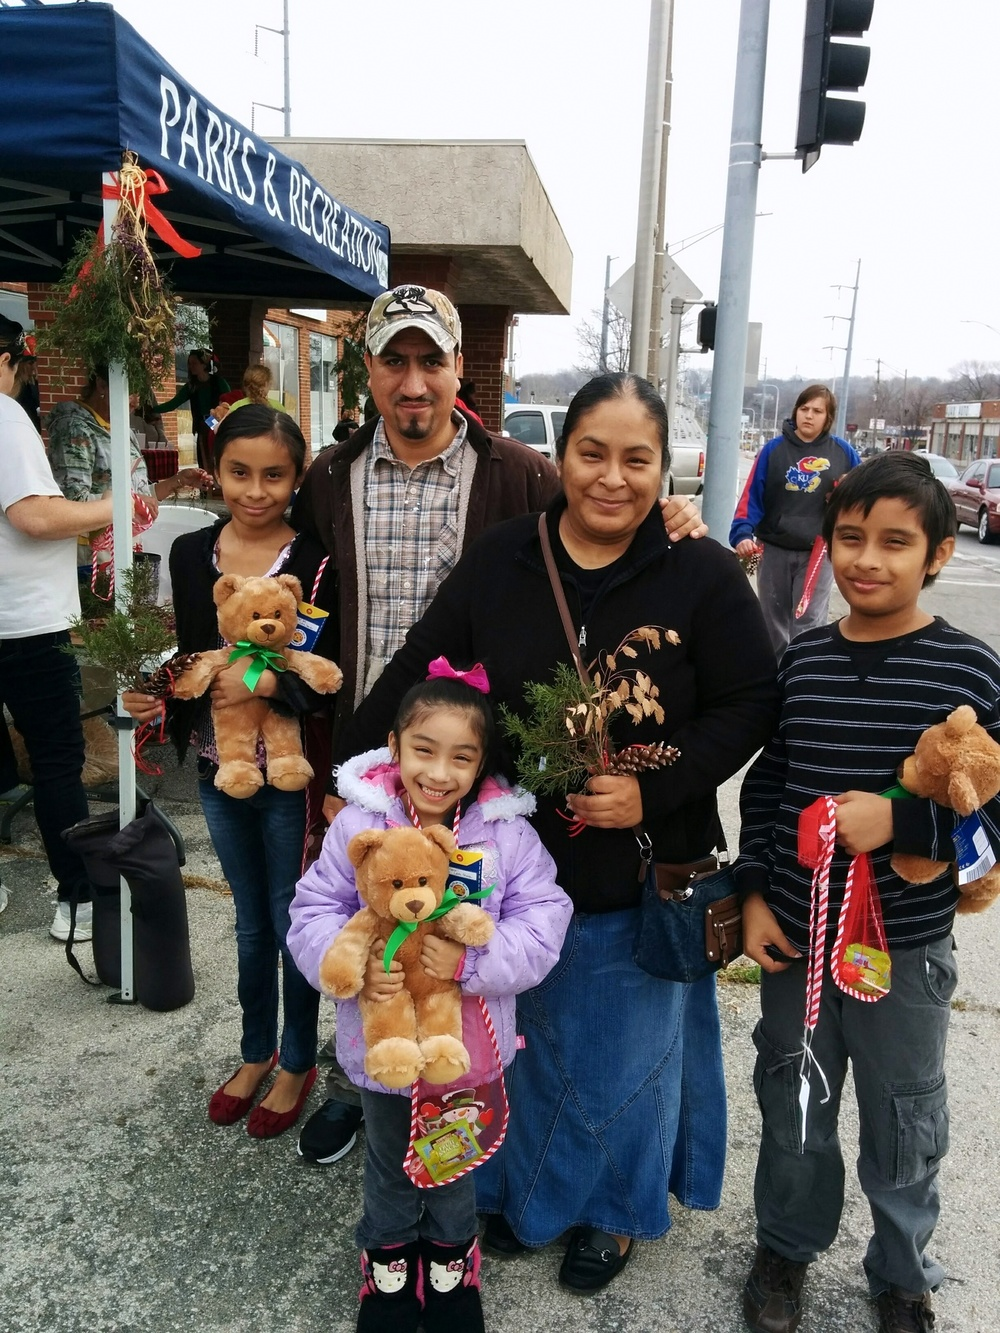 Families celebrate the holidays during the Second Annual Christmas Block Party in the Fairmount Business District.